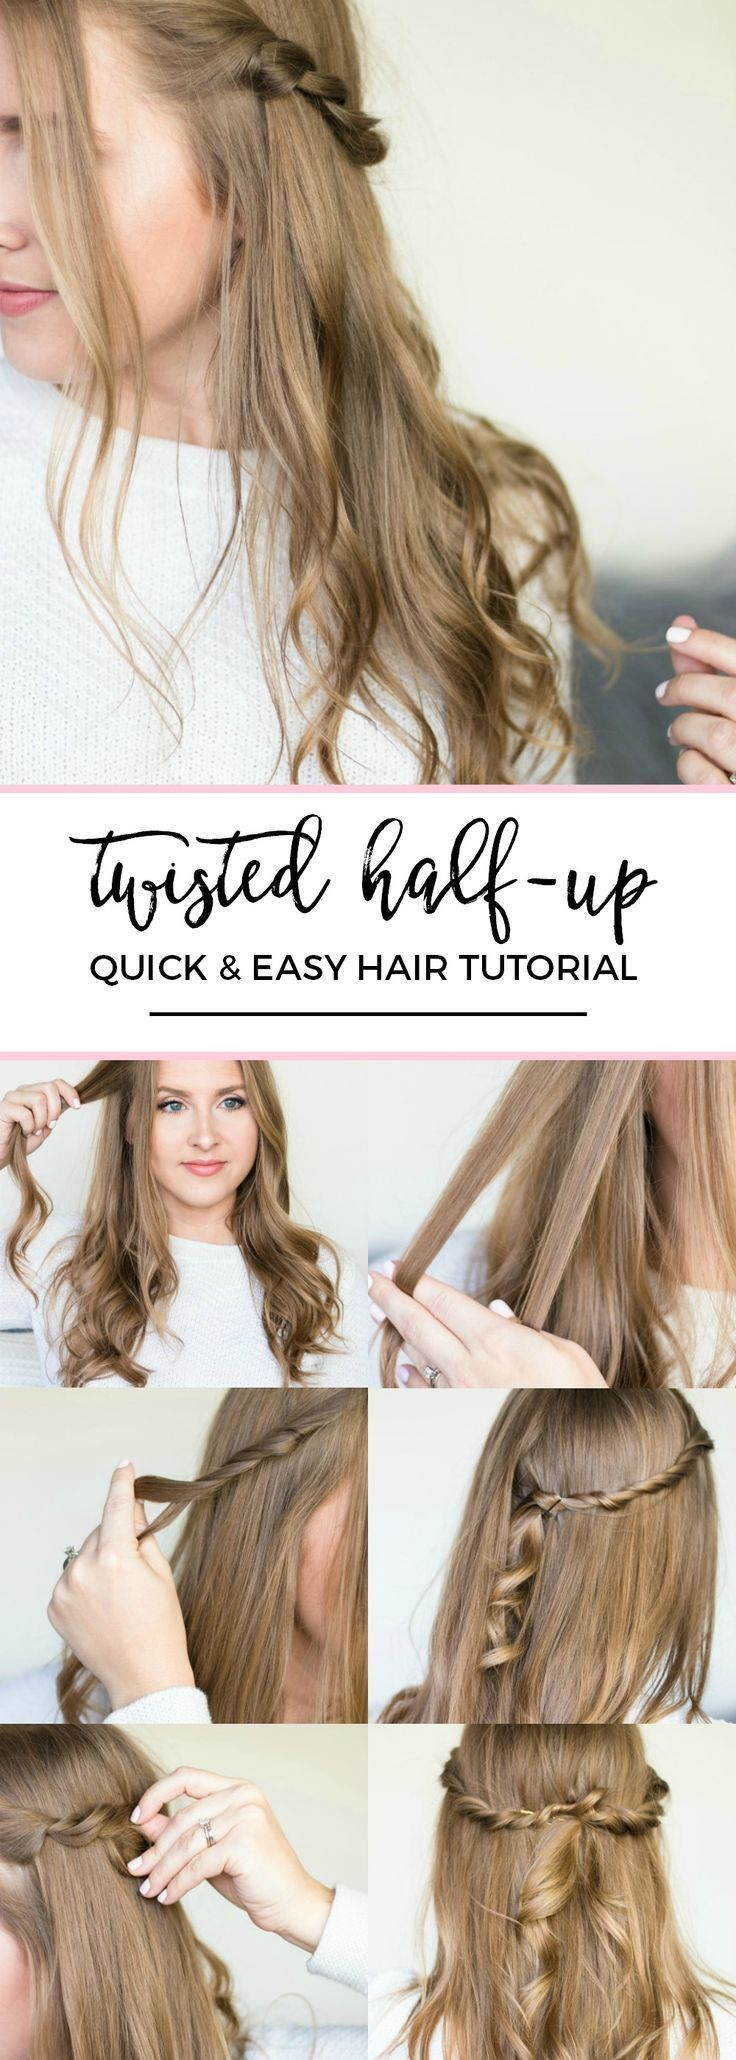 Half-up twisted hair style with soft waves hair tutorial | Quick and easy, no-heat hairstyle tutorials with beauty blogger Ashley Brooke Nicholas + the best shampoo and conditioner for dry hair from /PanteneUS/   ! #StrongisBeautiful sponsored